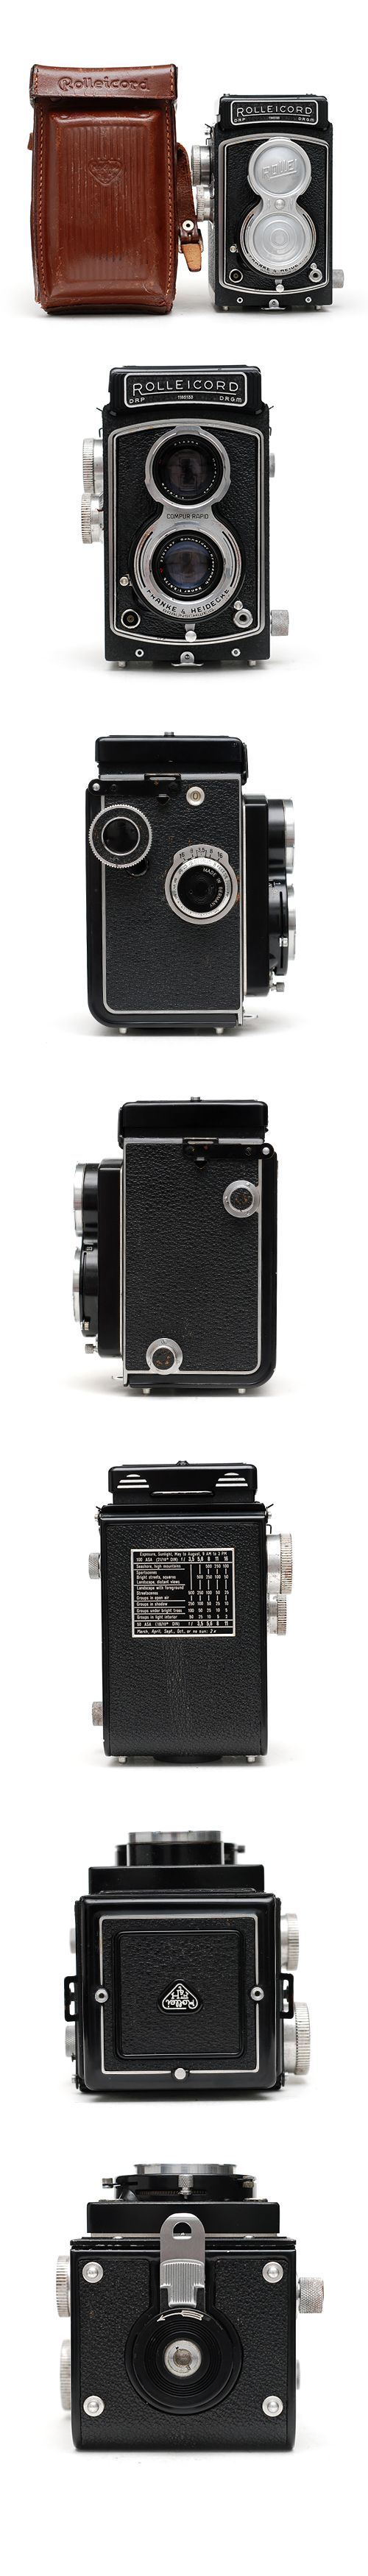 The Rolleicord, a lower-cost version of the immortal Rolleiflex.